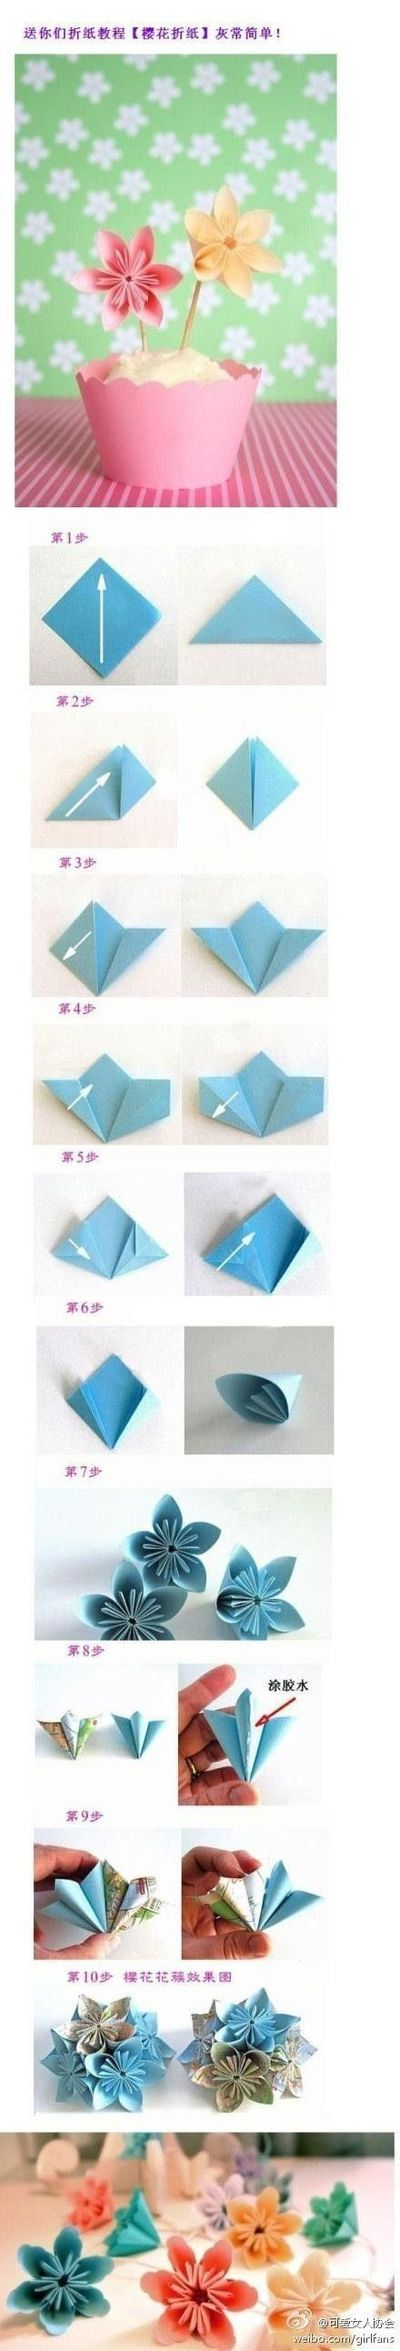 Origami flower arrangement--Why not make a few of these to tuck into eggs instead of candy?  I know at least one little girl who would LOVE it.